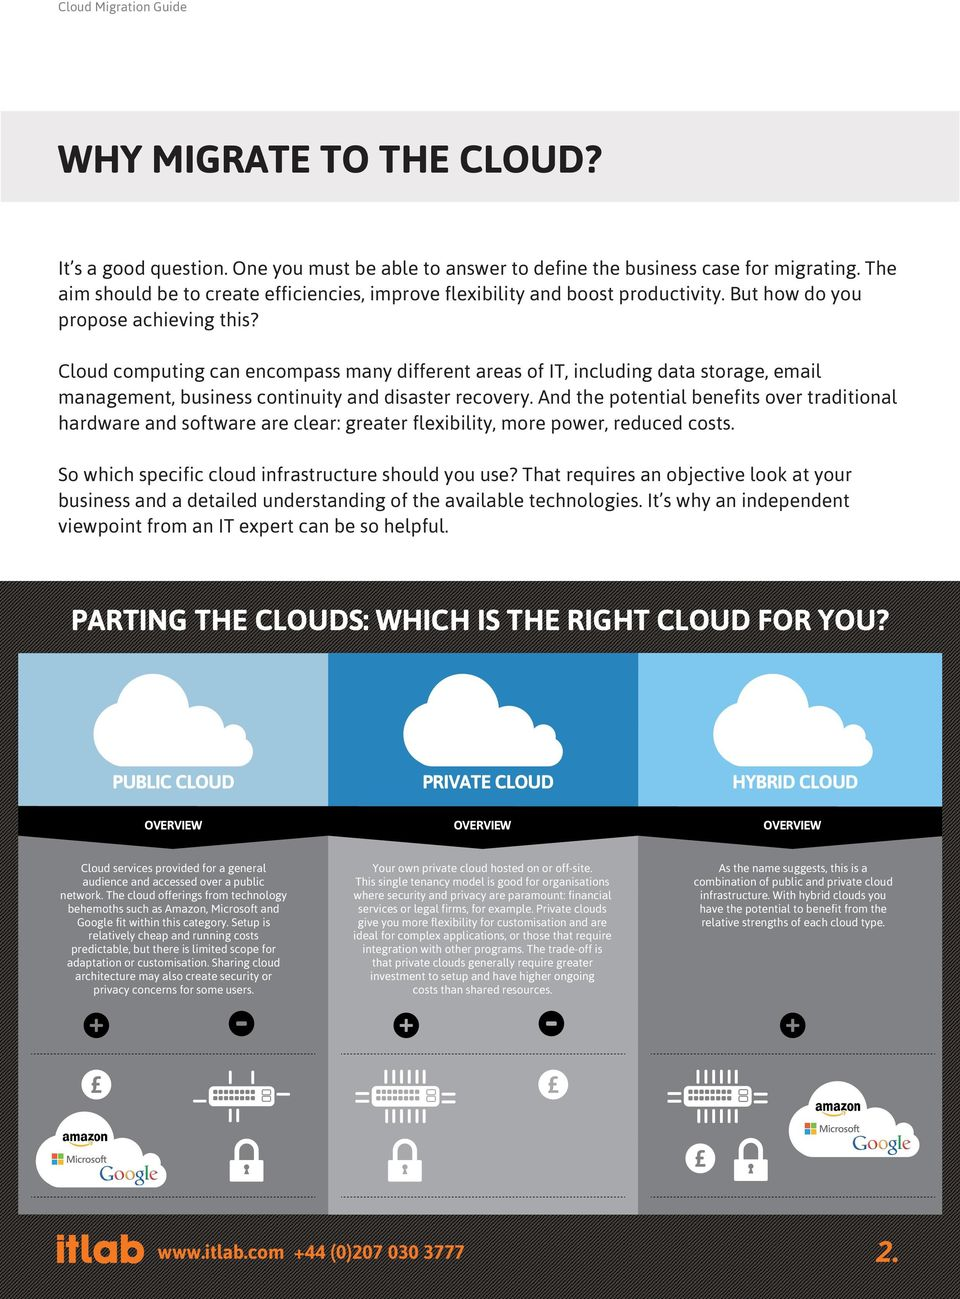 Cloud computing can encompass many different areas of IT, including data storage, email management, business continuity and disaster recovery.